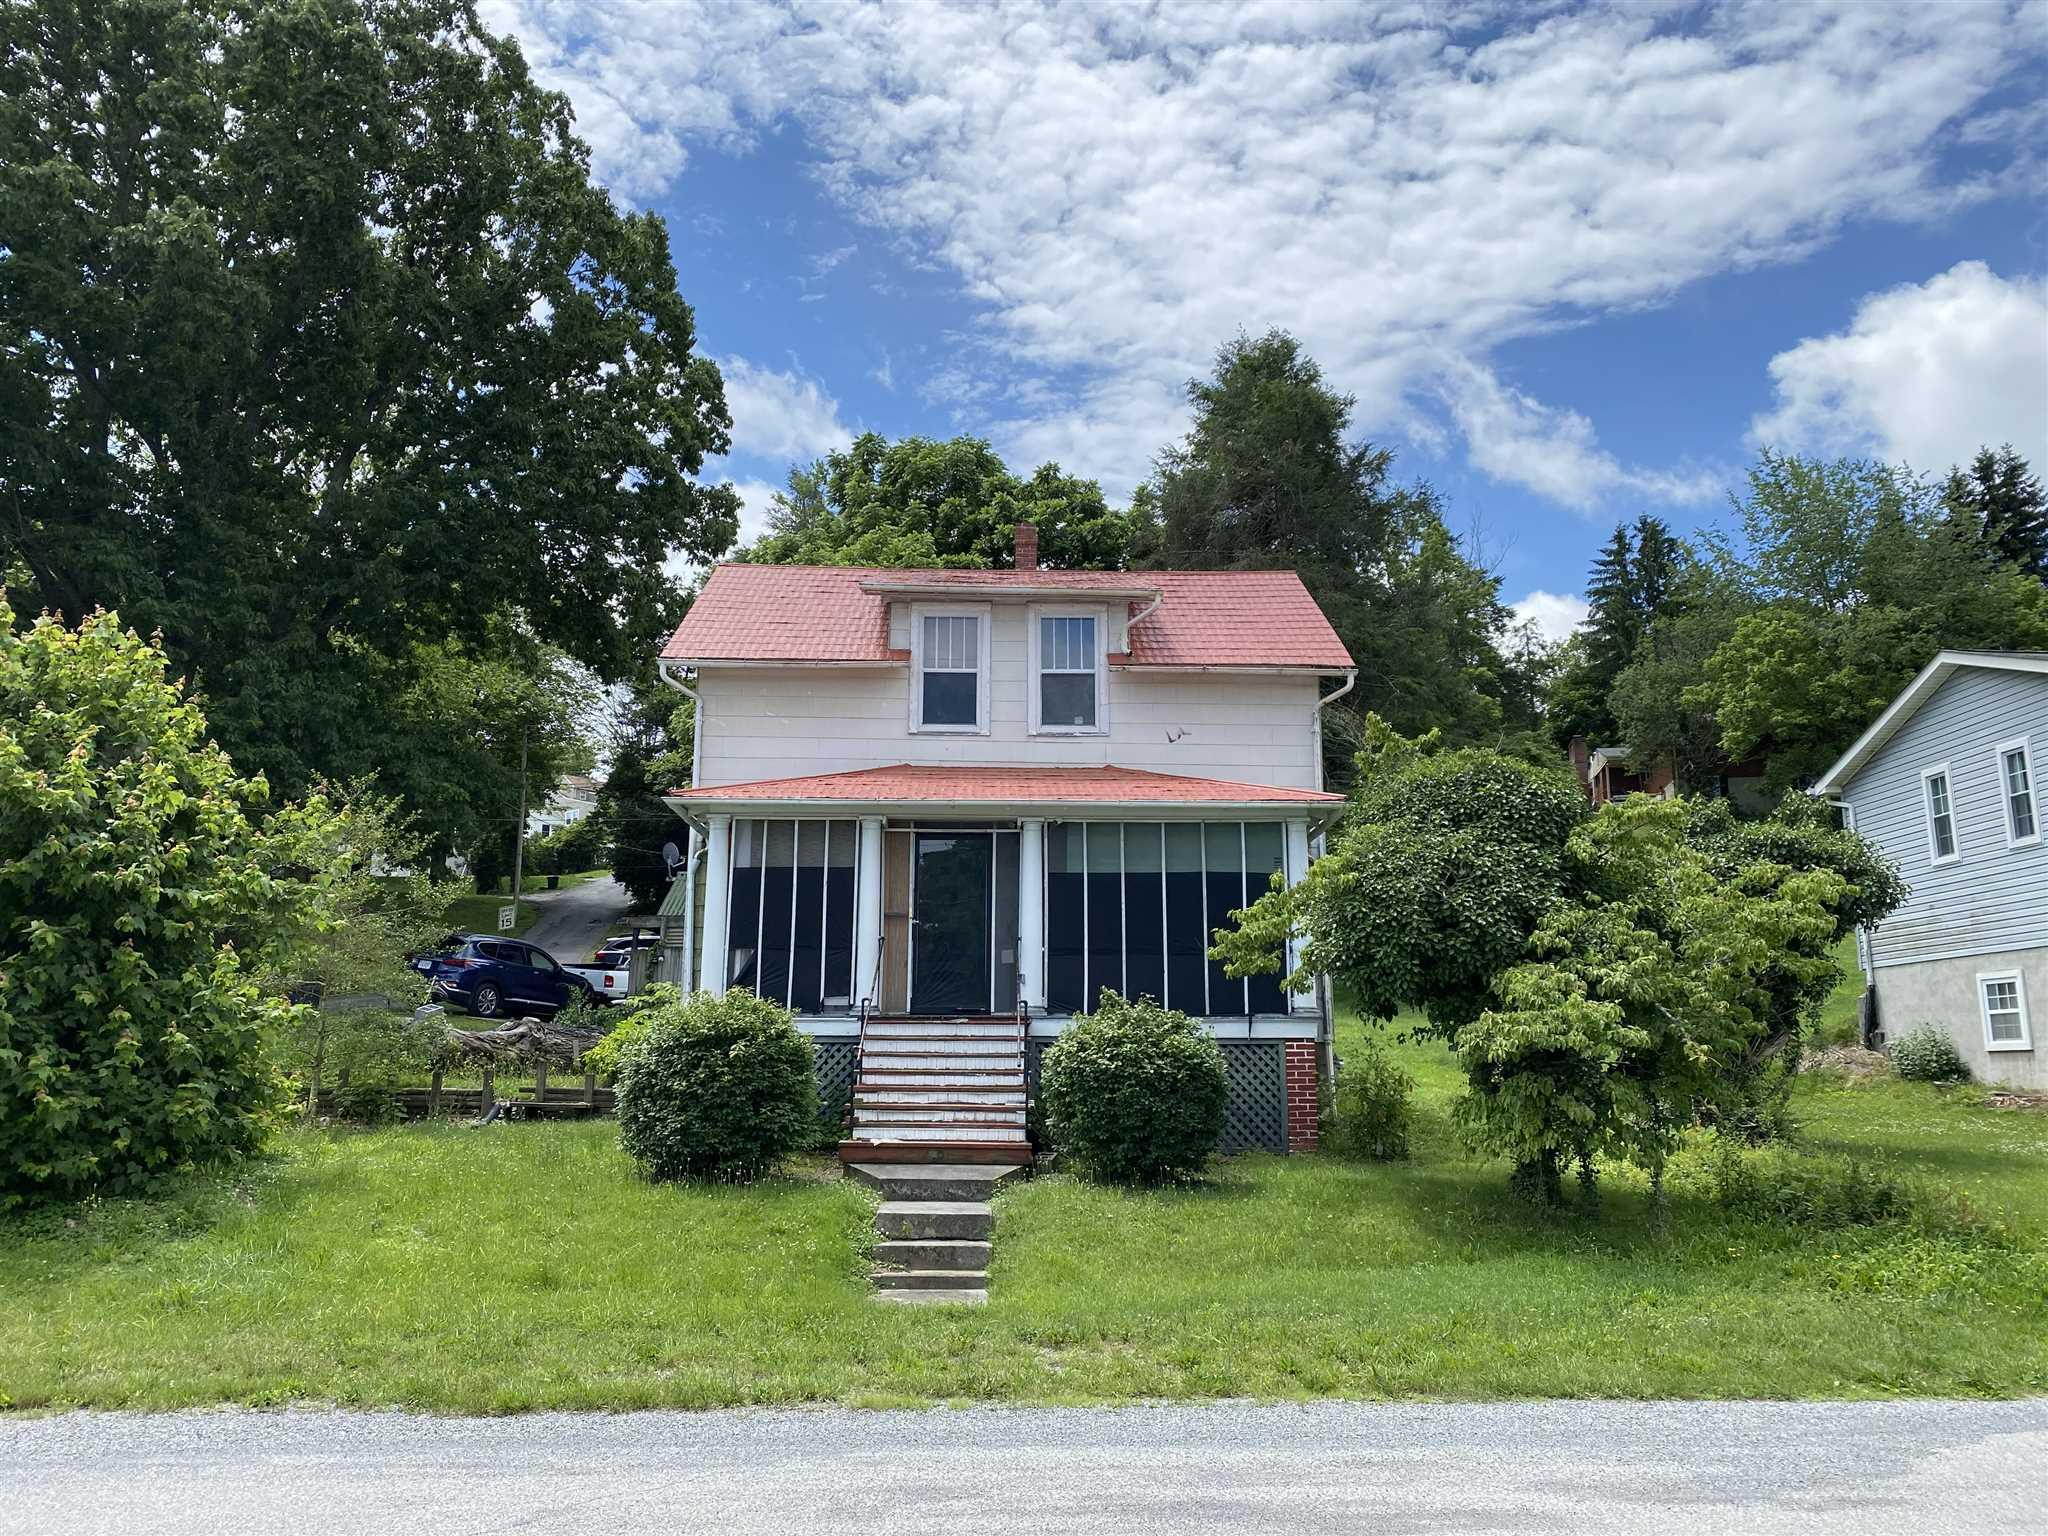 Project home ready for a new owner! Enjoy the mass potential this home has to offer with its roomy feel, high ceilings and original hardwoods throughout. Full basement with a fully functional workspace, as well as access to all of the home's major appliances.